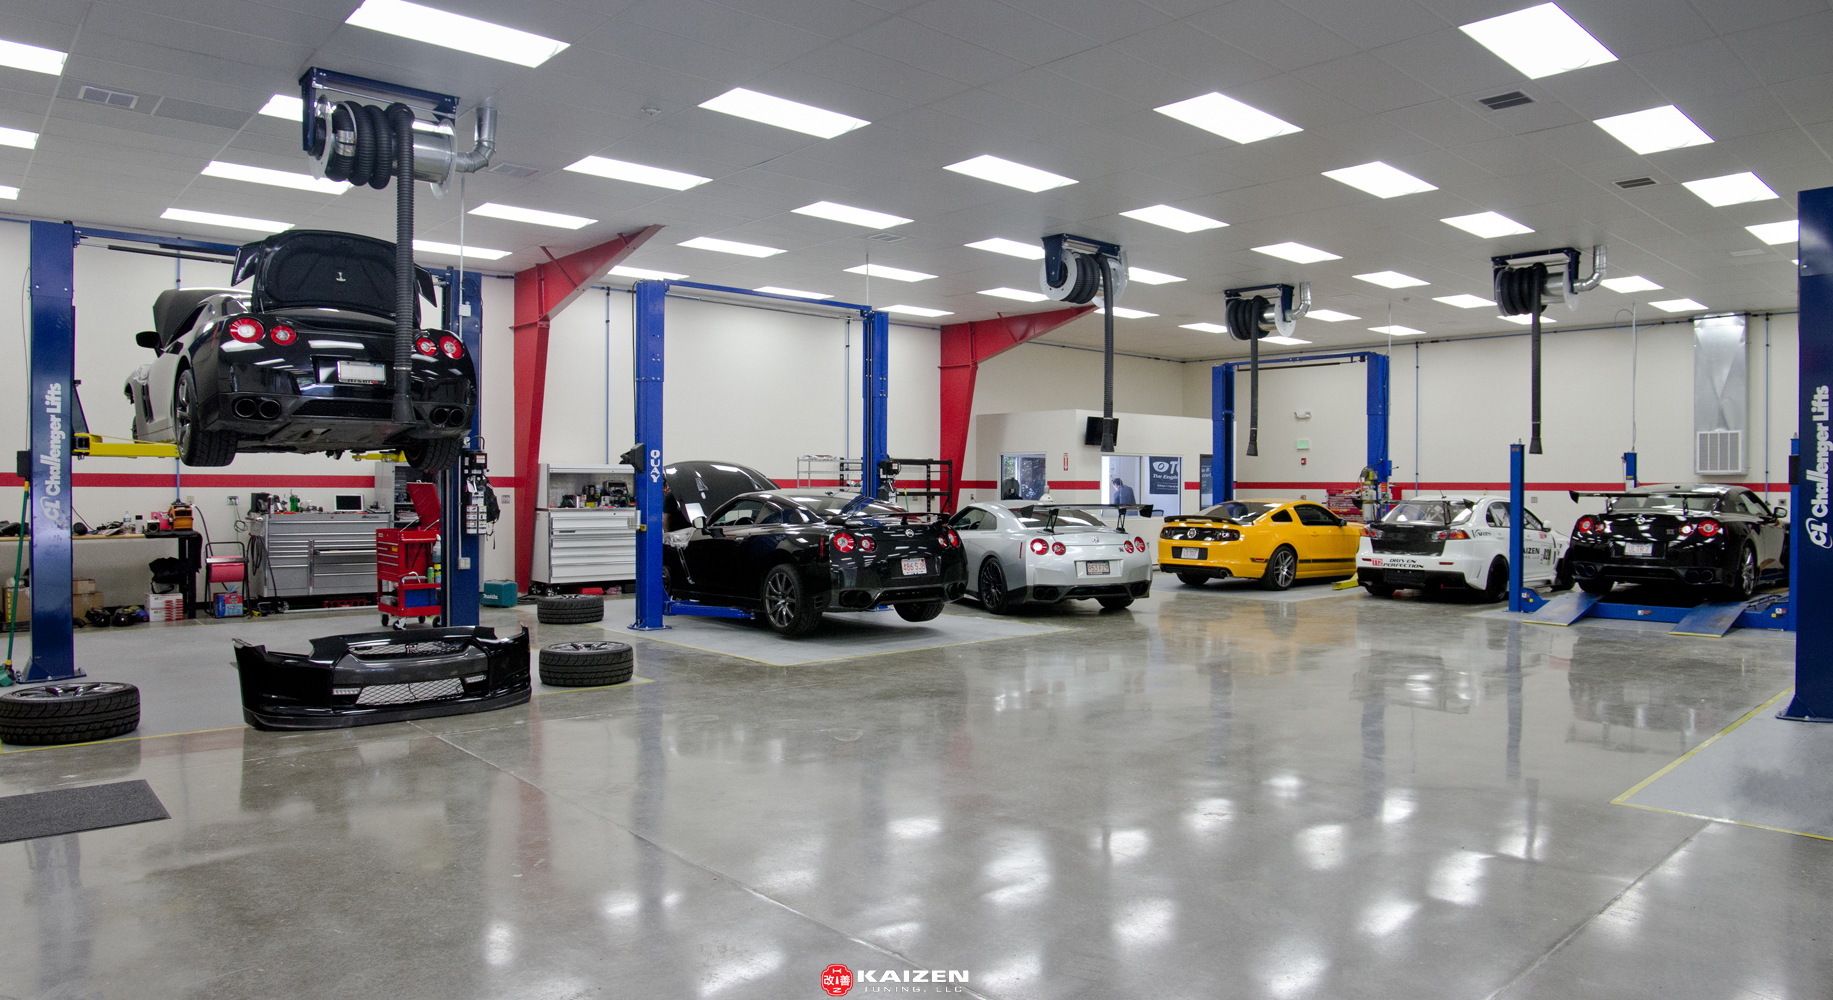 10,000 sq. ft. state of the art facility - Kaizen Tuning